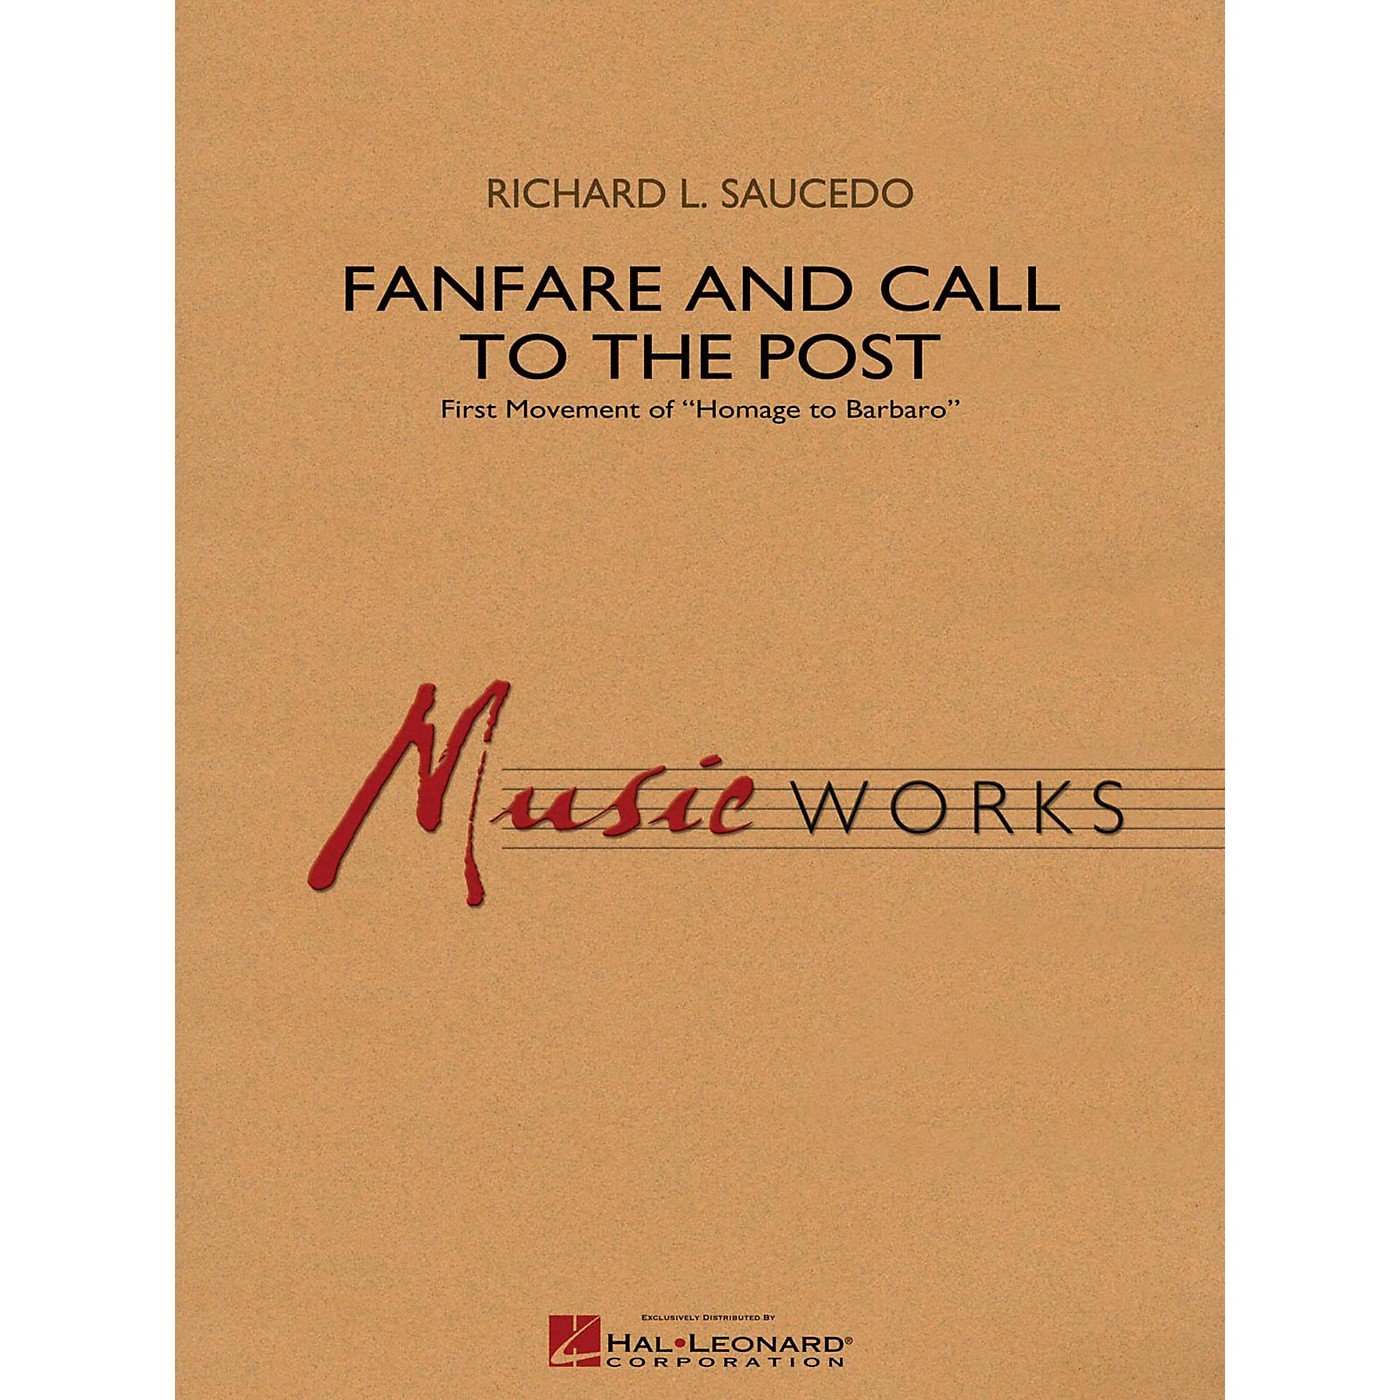 Hal Leonard Fanfare and Call to the Post - MusicWorks Grade 4 Concert Band thumbnail